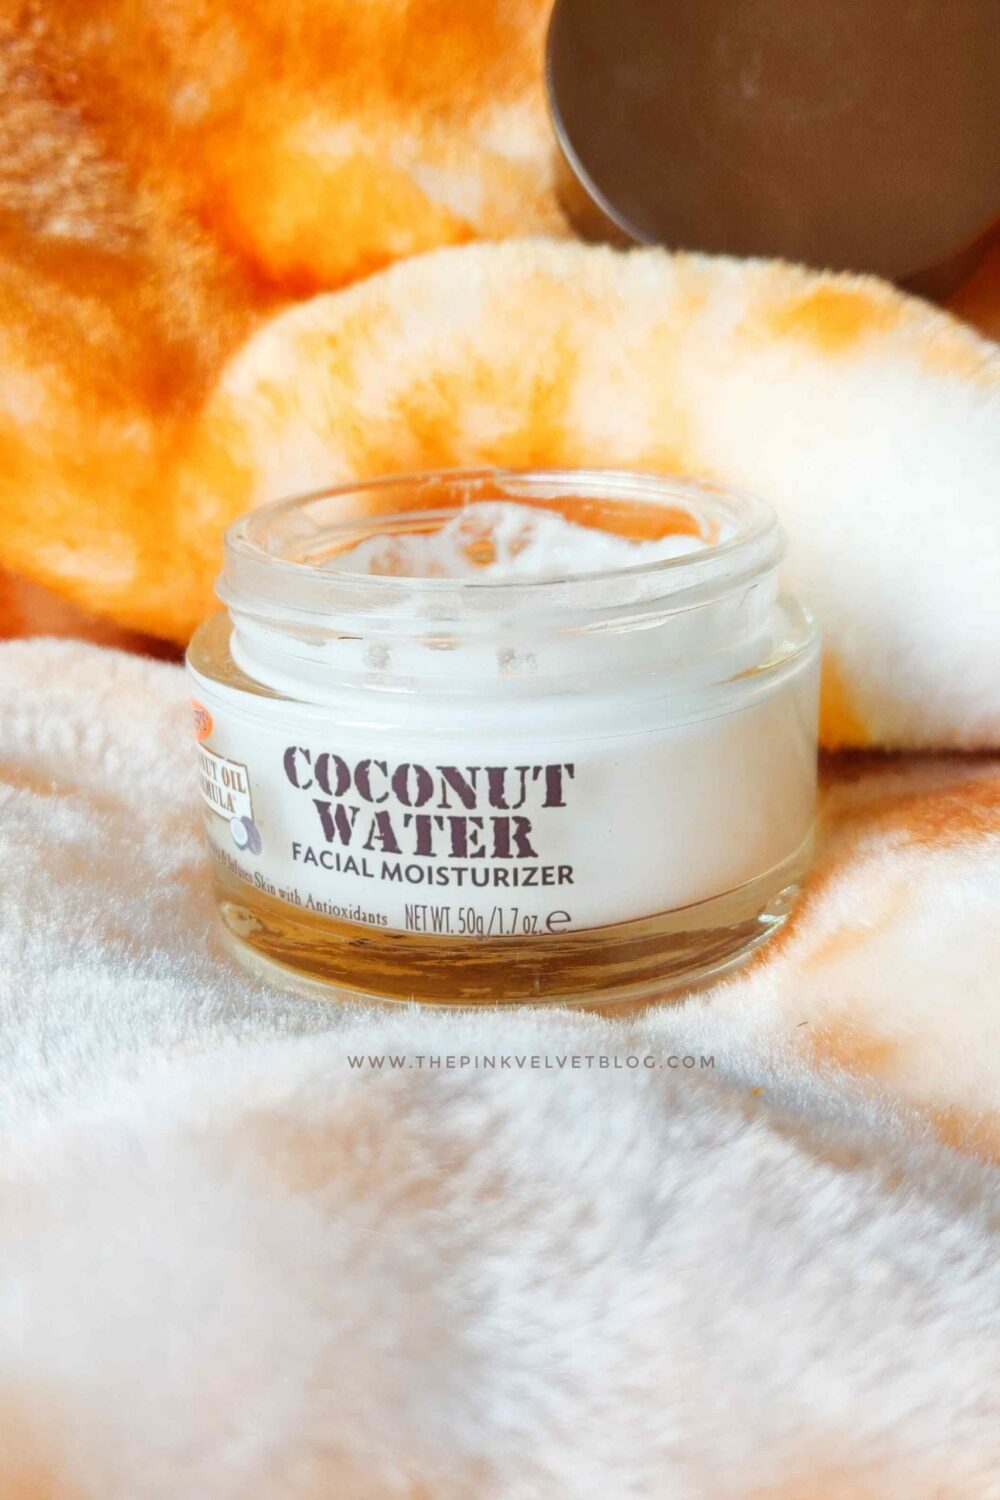 Palmer's Coconut Water Facial Moisturizer Review